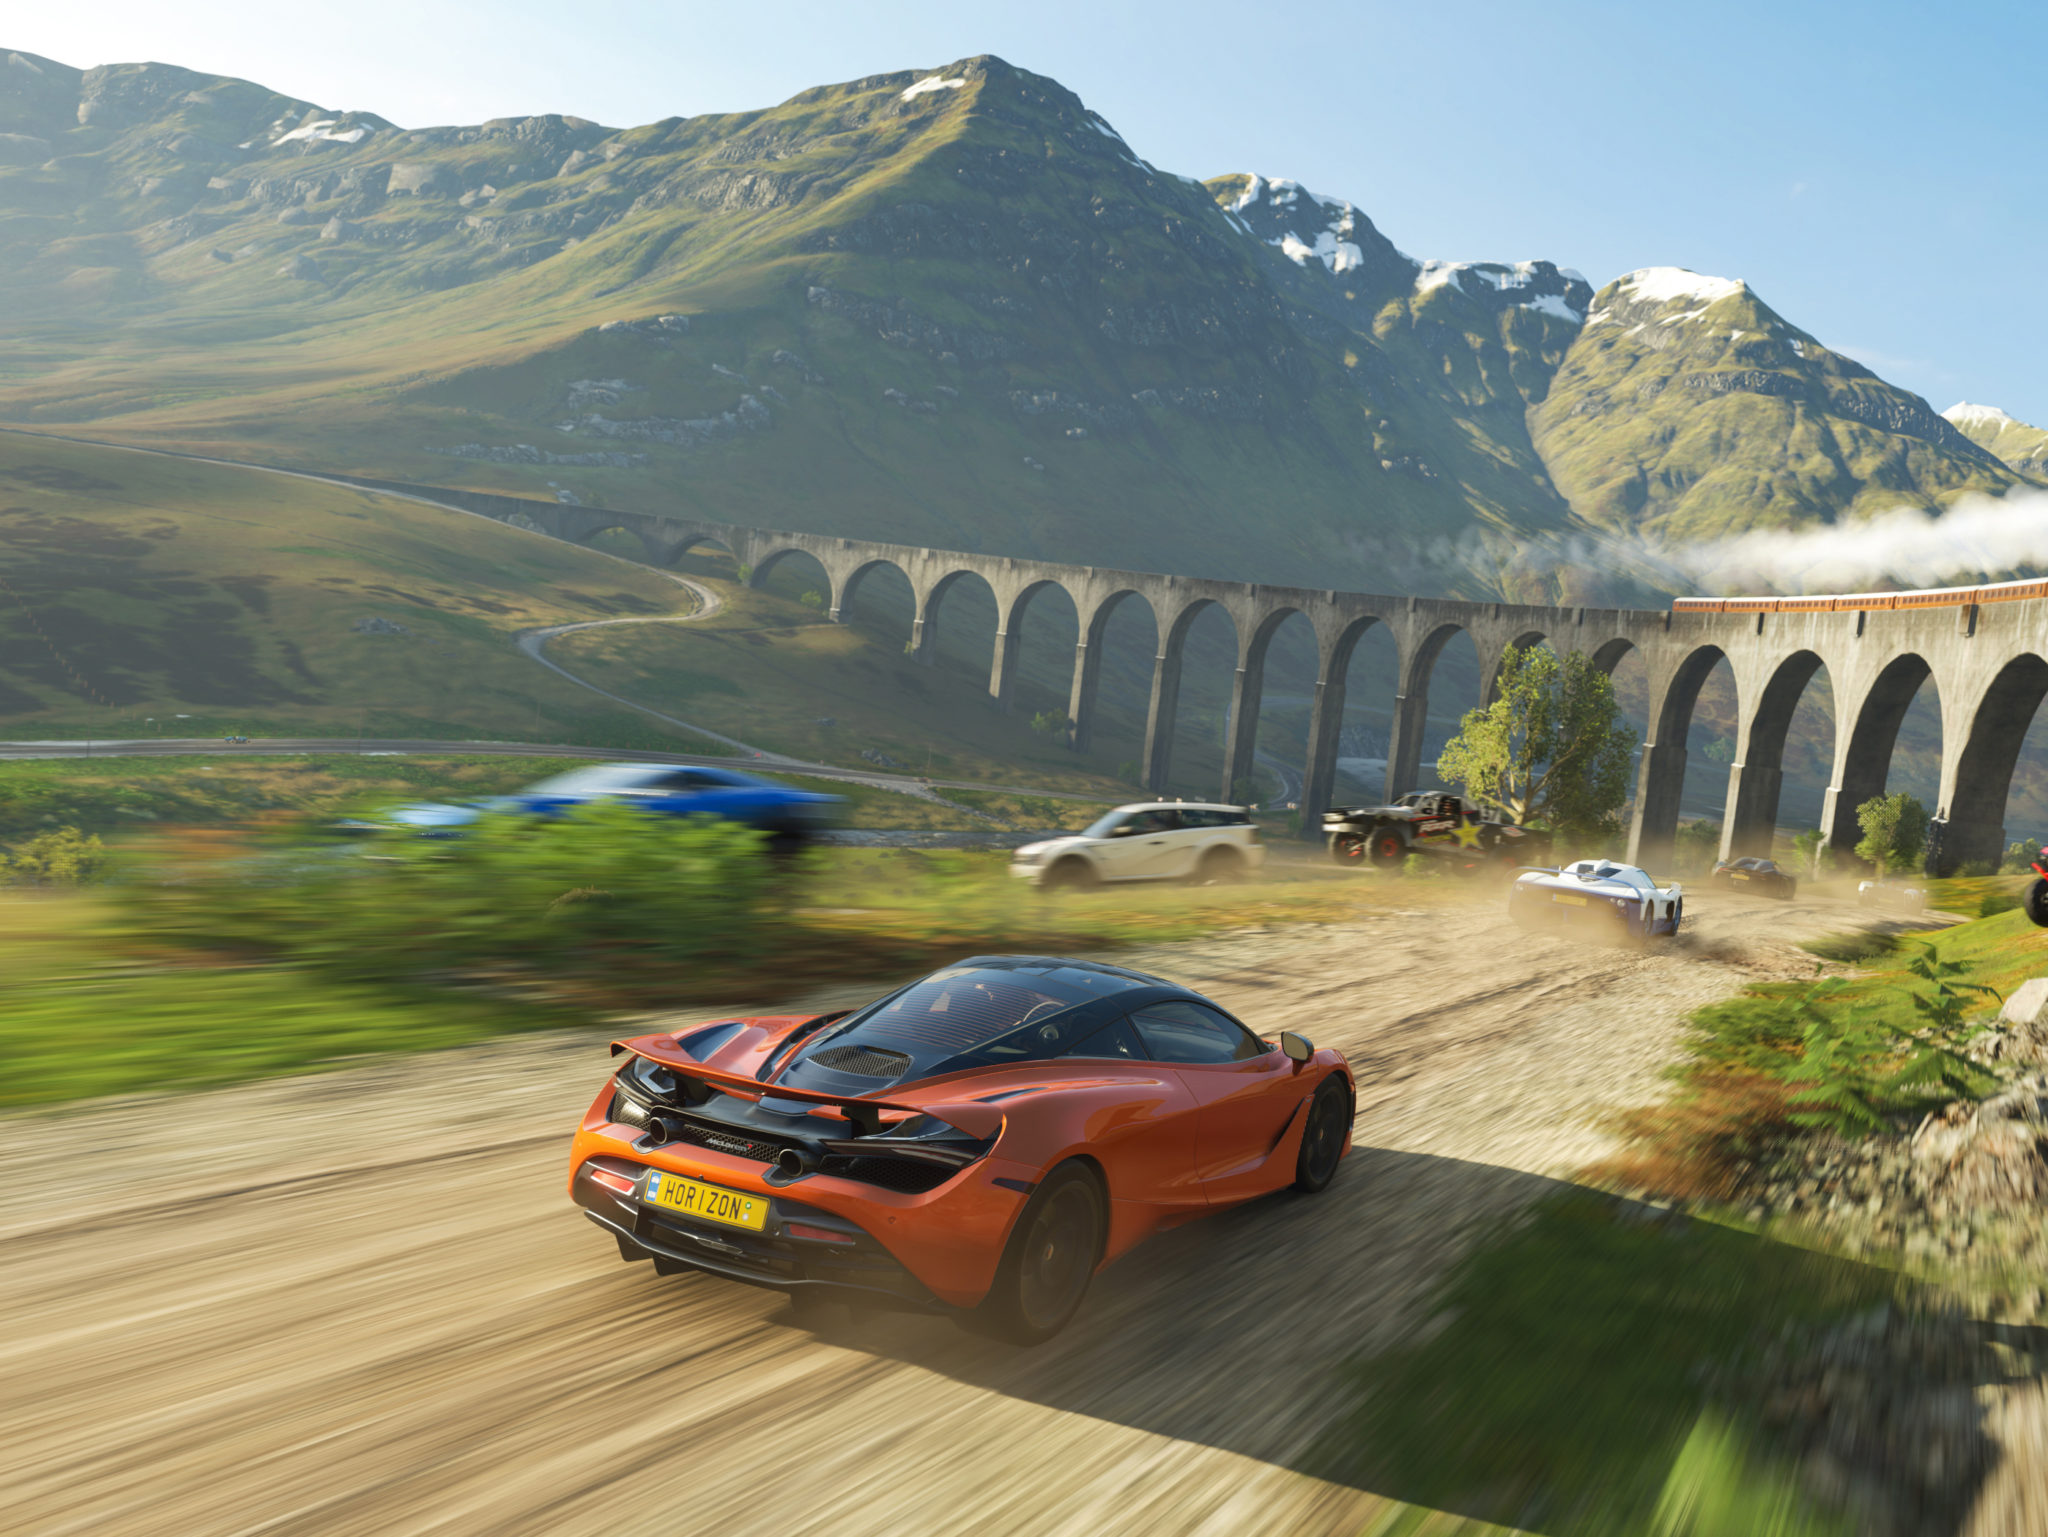 Experience unique ideas and gameplay opportunities in Forza Horizon 4